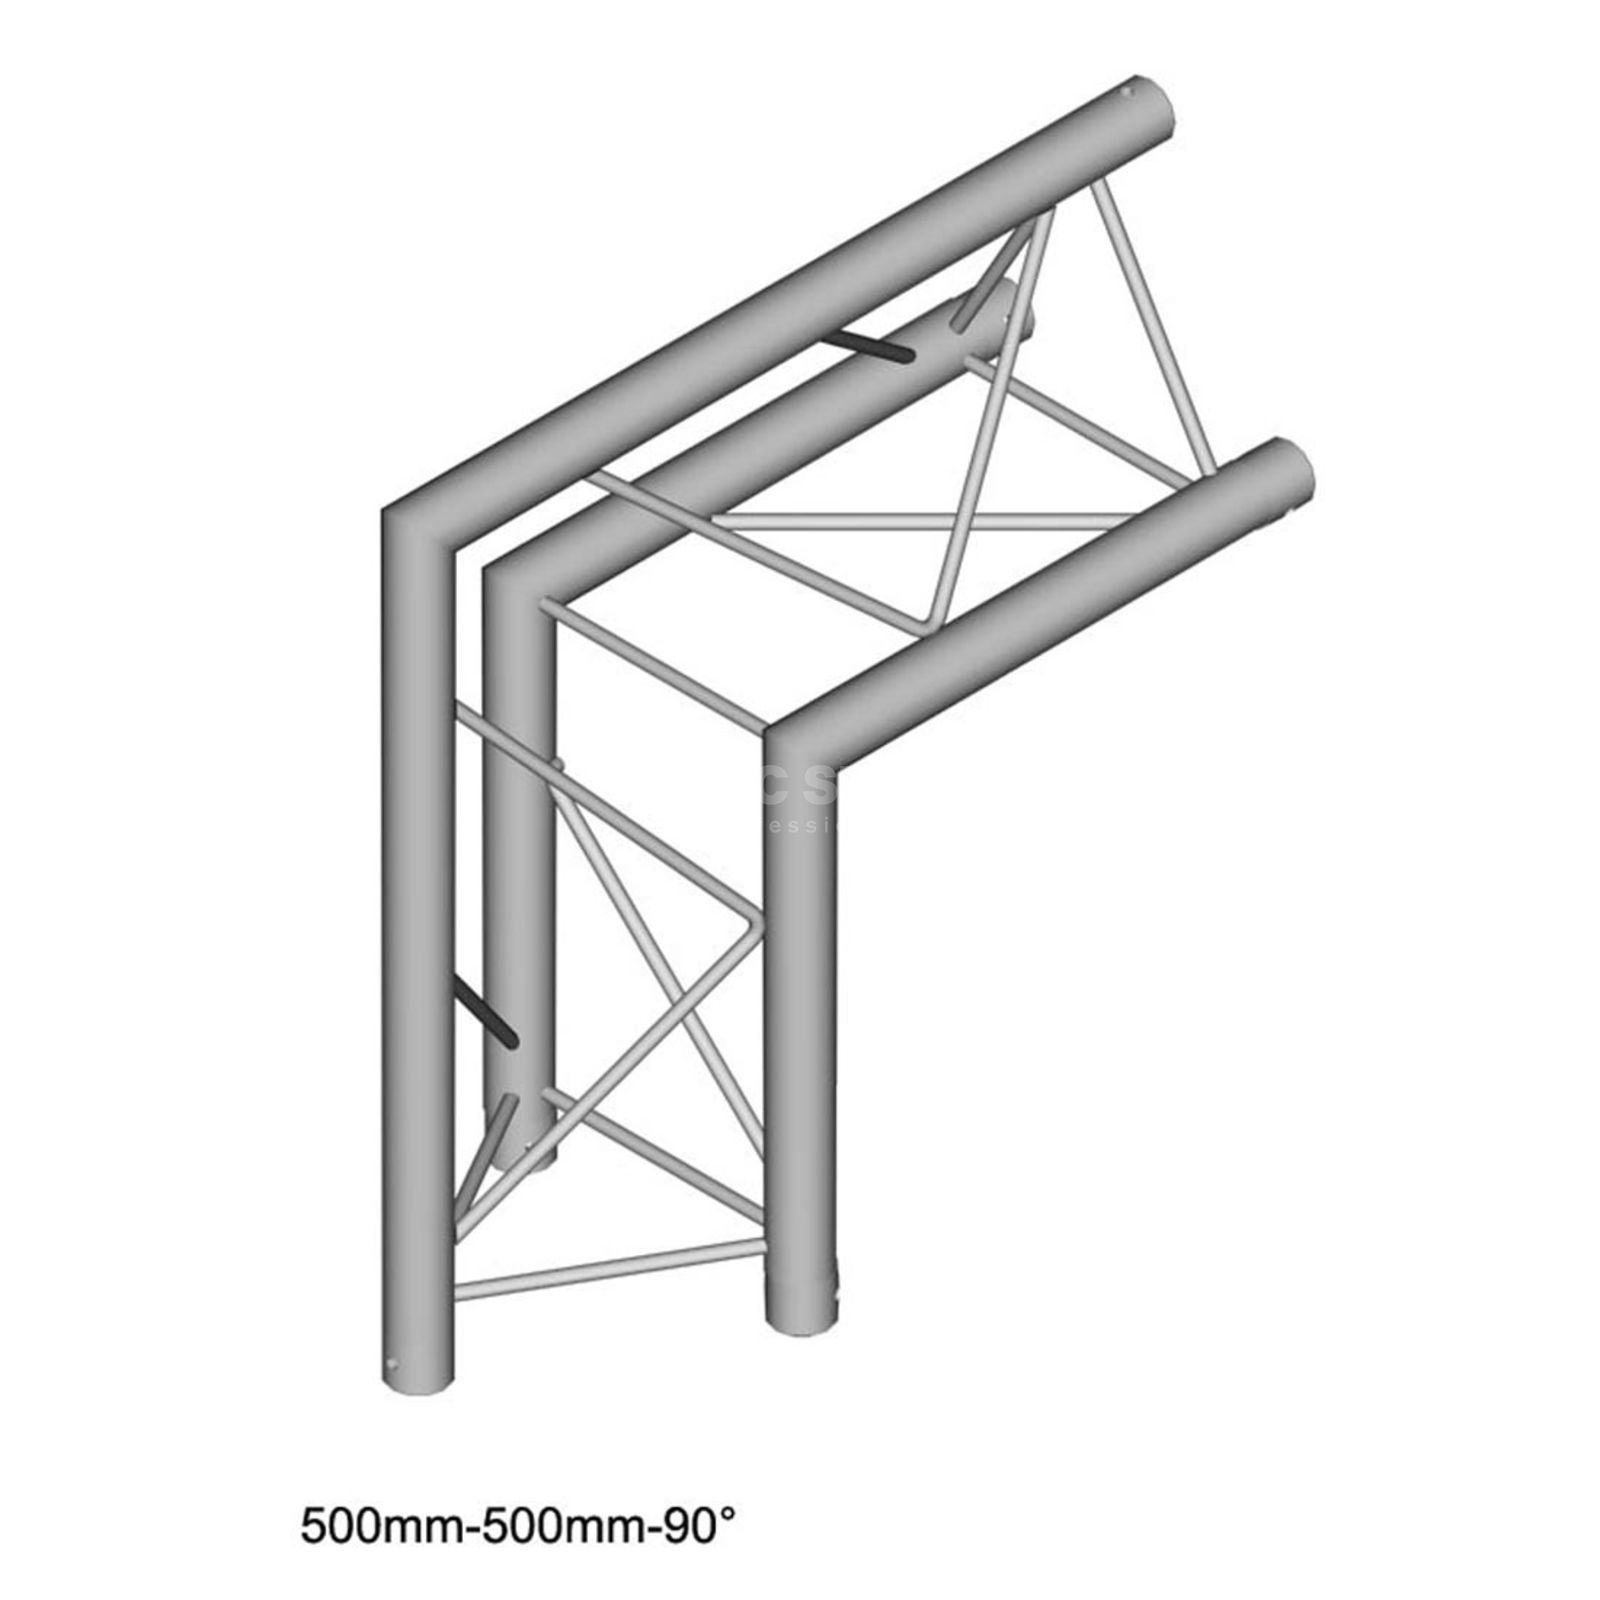 DURATRUSS DT 23 C24-L90, 3-Point Truss 90° Corner, 2-Way, Tip outer Produktbillede